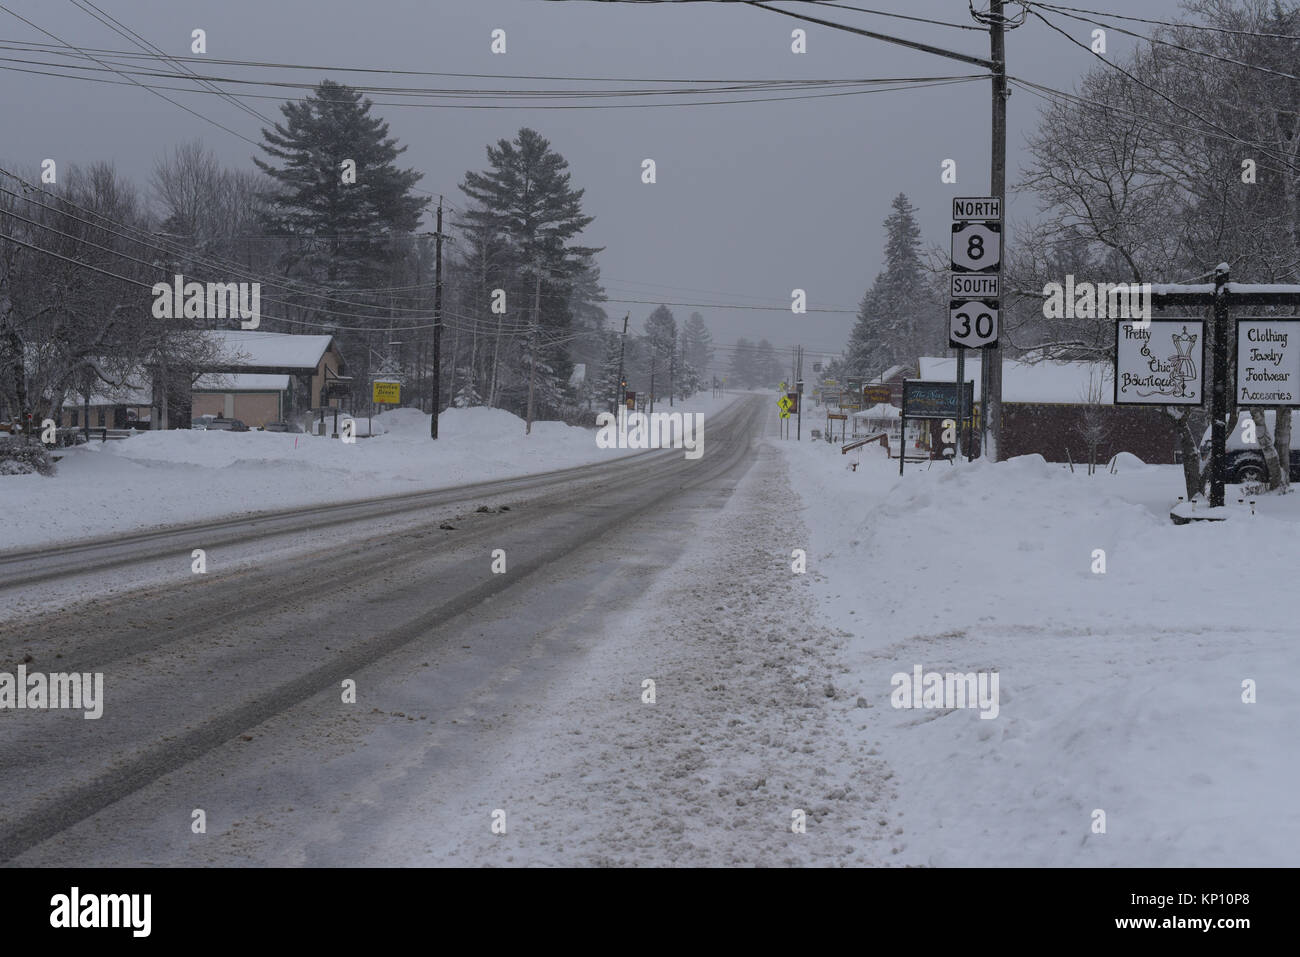 Slippery snow covered road in Speculator, NY New York, USA in the Adirondack Mountains with no people or vehicles - Stock Image